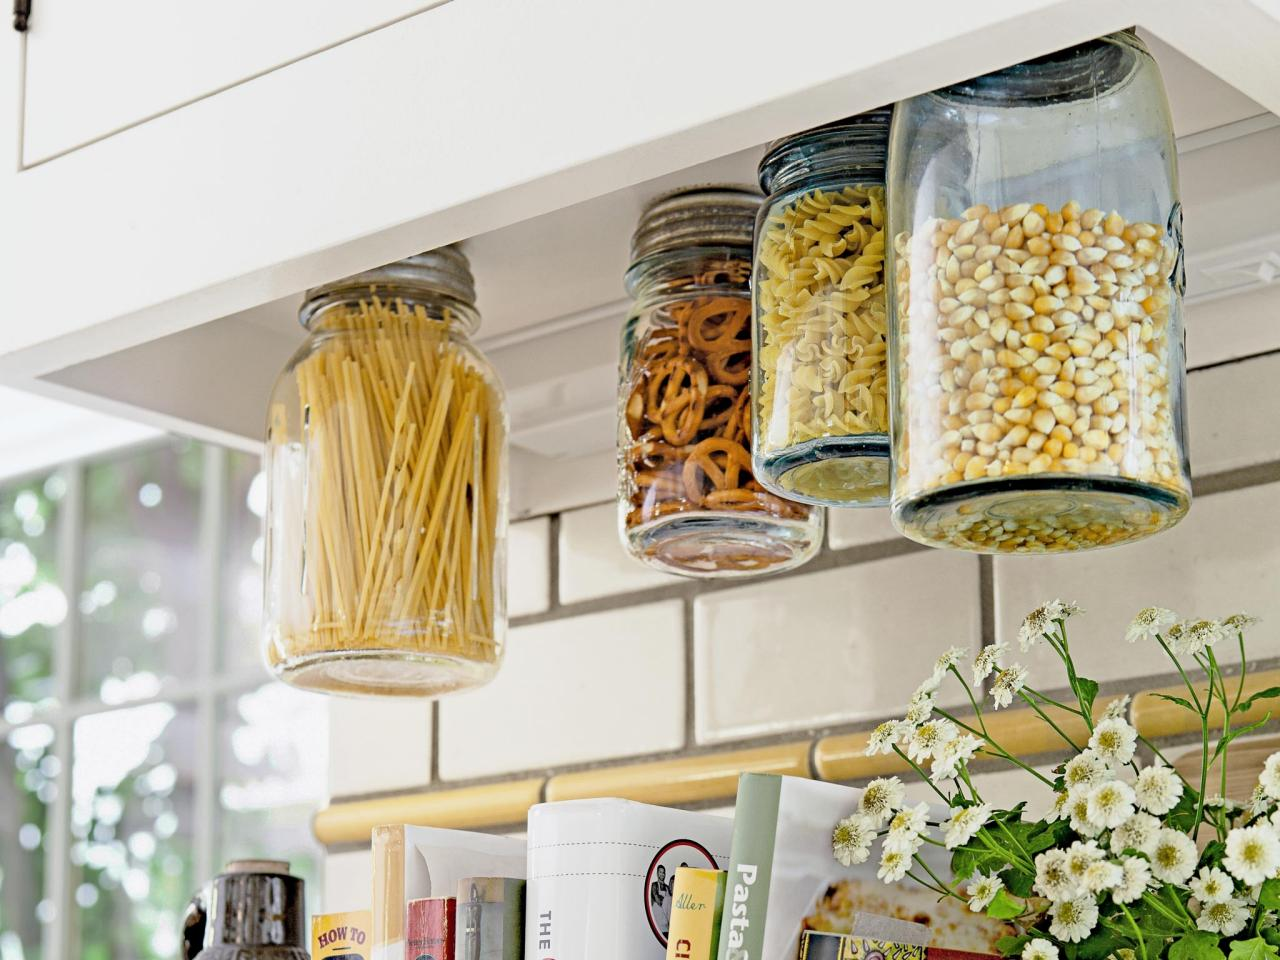 48 Easy Kitchen Storage Hacks That Will Instantly Upgrade Your Life